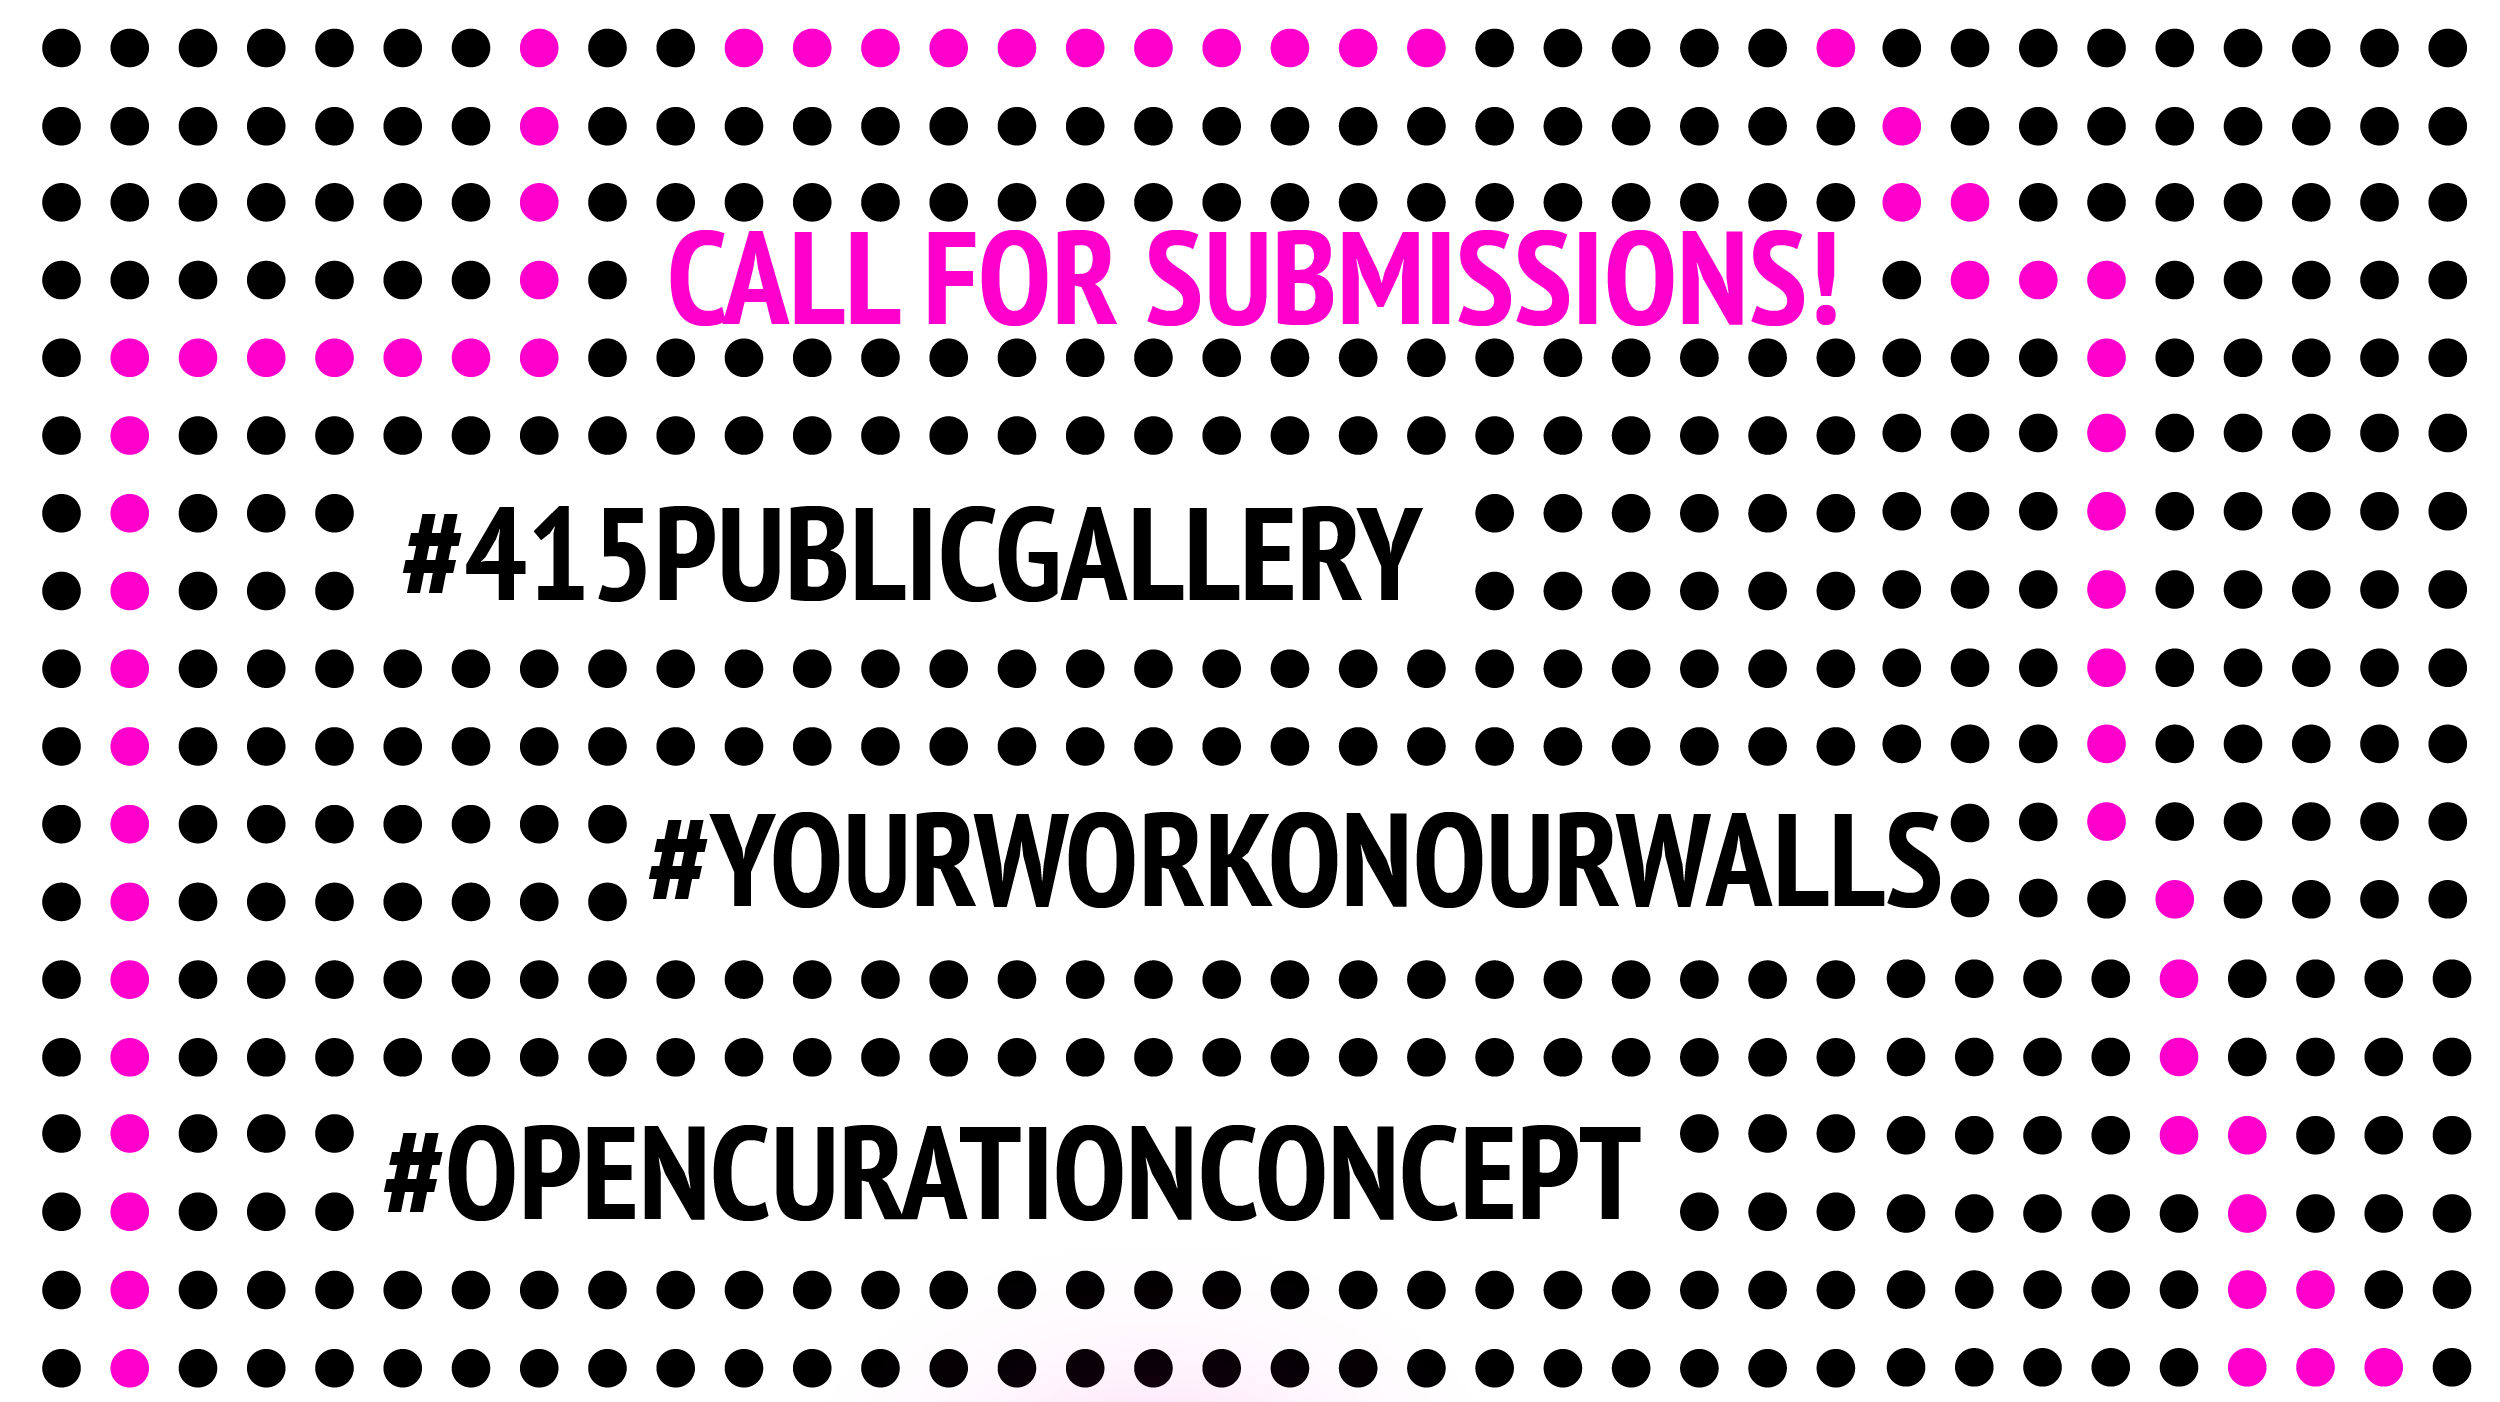 Virtual Opening Celebration: (415) Public Gallery, a crowdsourced art show